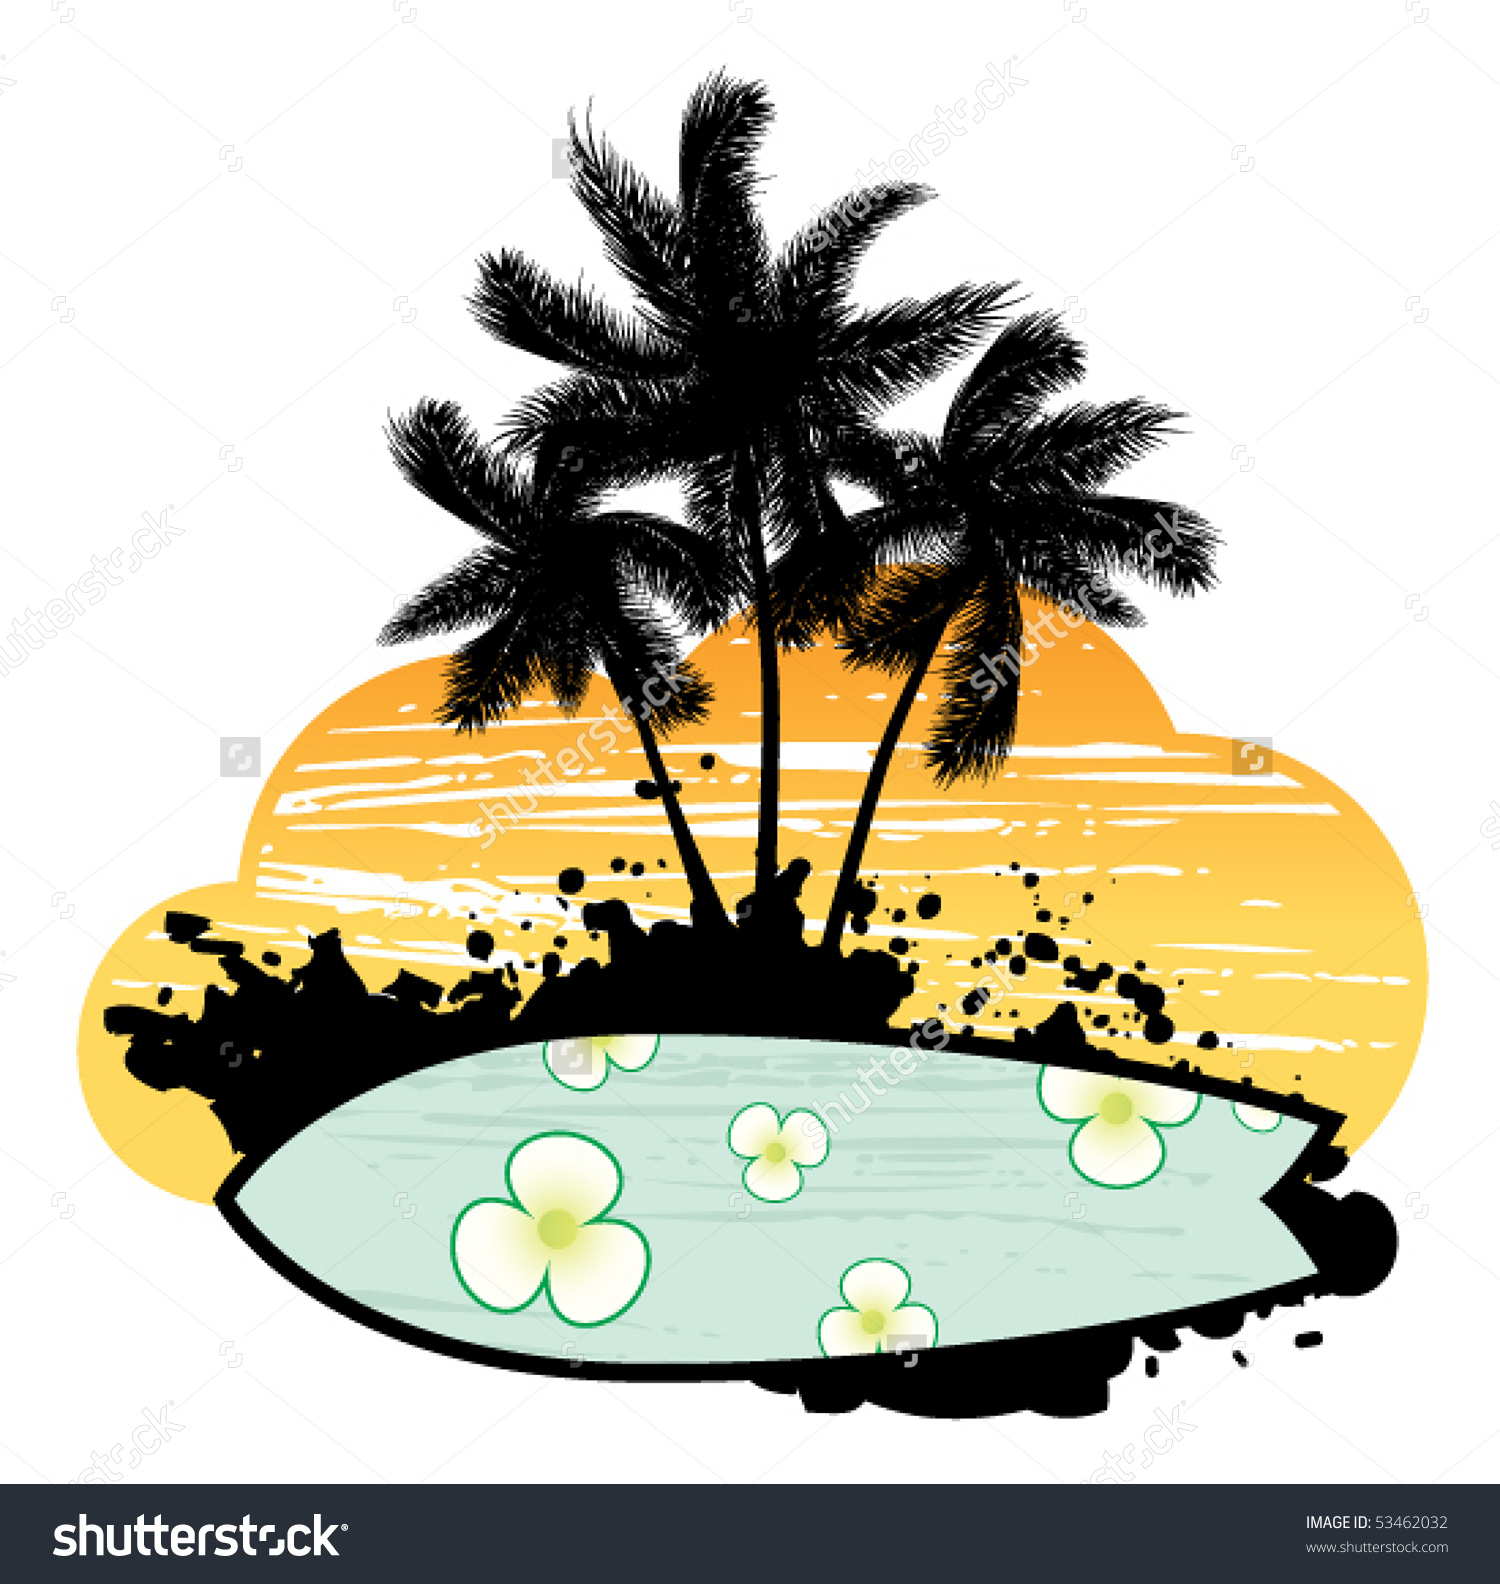 Palm tree and surfboard clipart banner royalty free Abstract With Palm Trees, Flowers And Surfboard Stock Vector ... banner royalty free